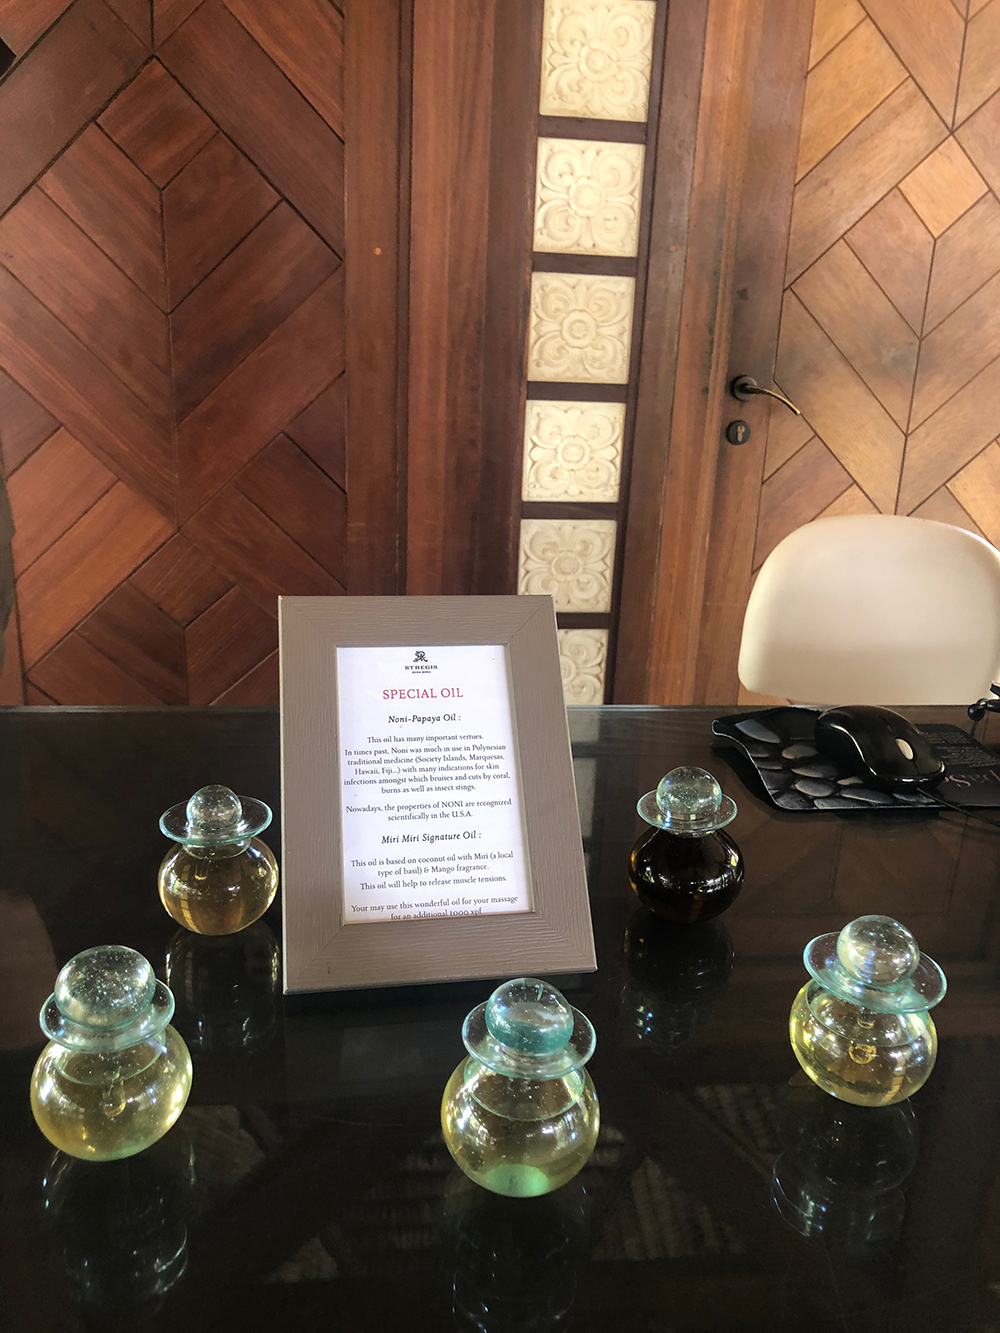 The spa also offered us our choice of oils to use in our treatment.